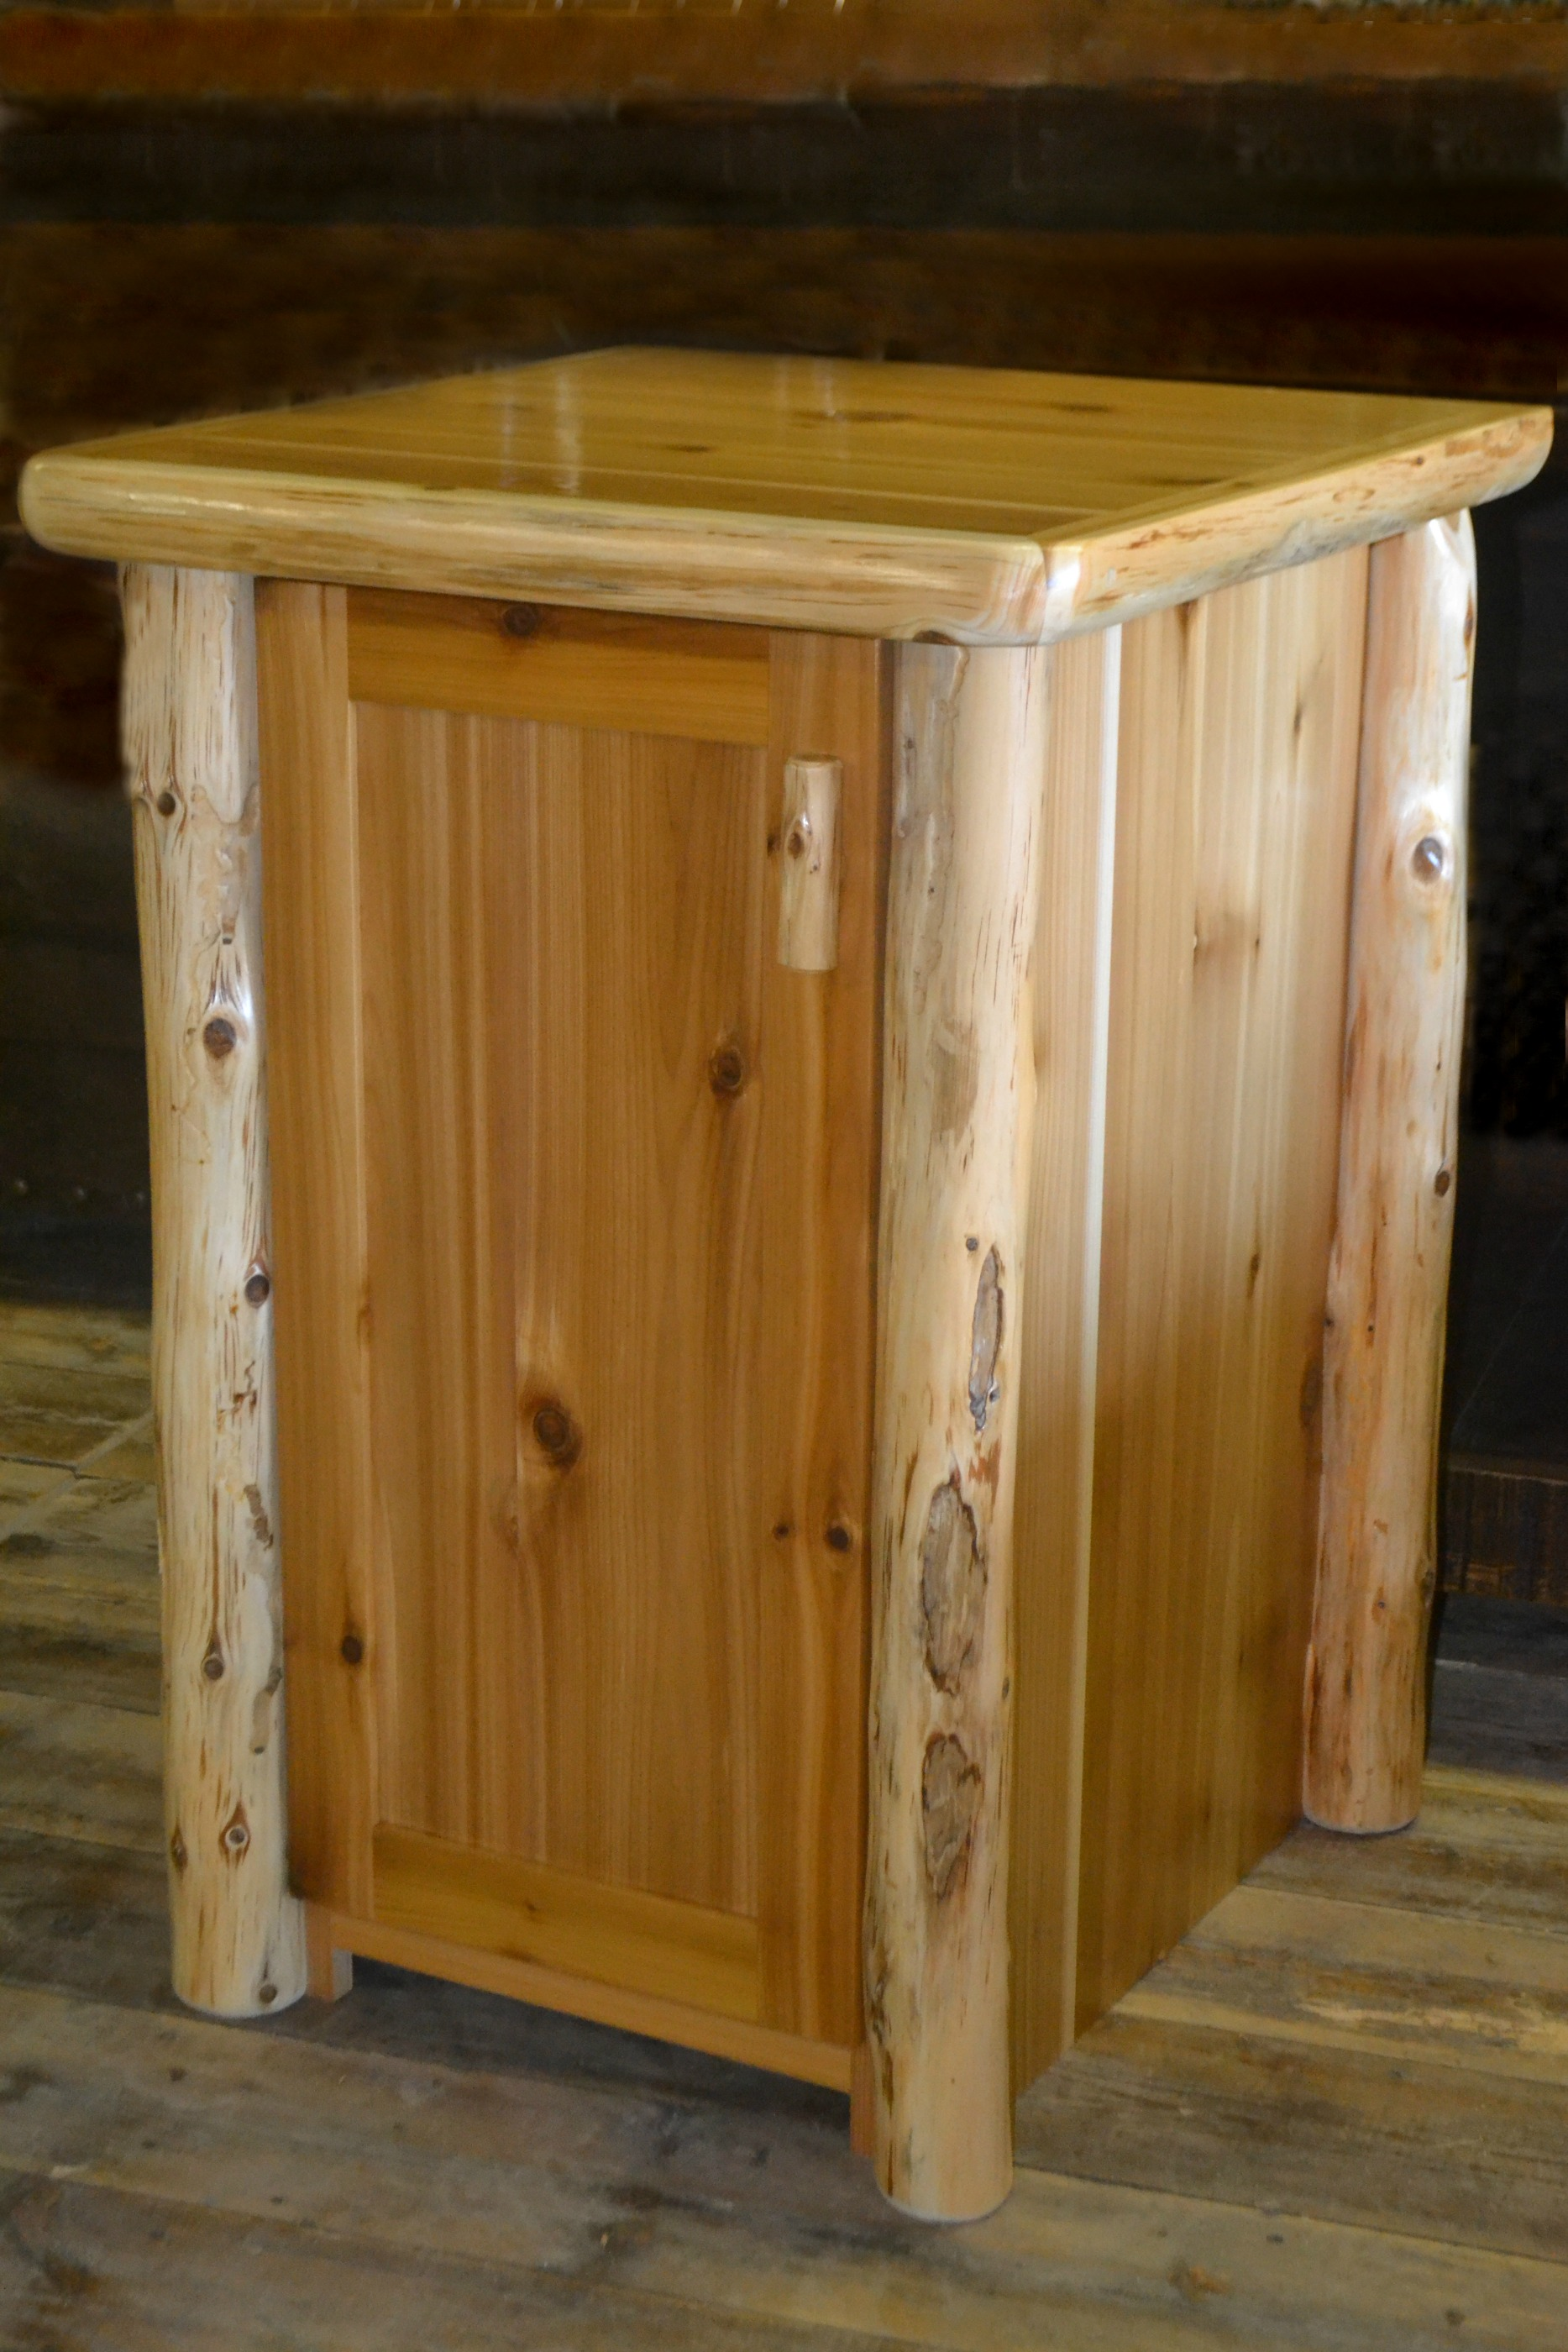 Timberland Trash Can Cabinet Rustic Furniture Mall By